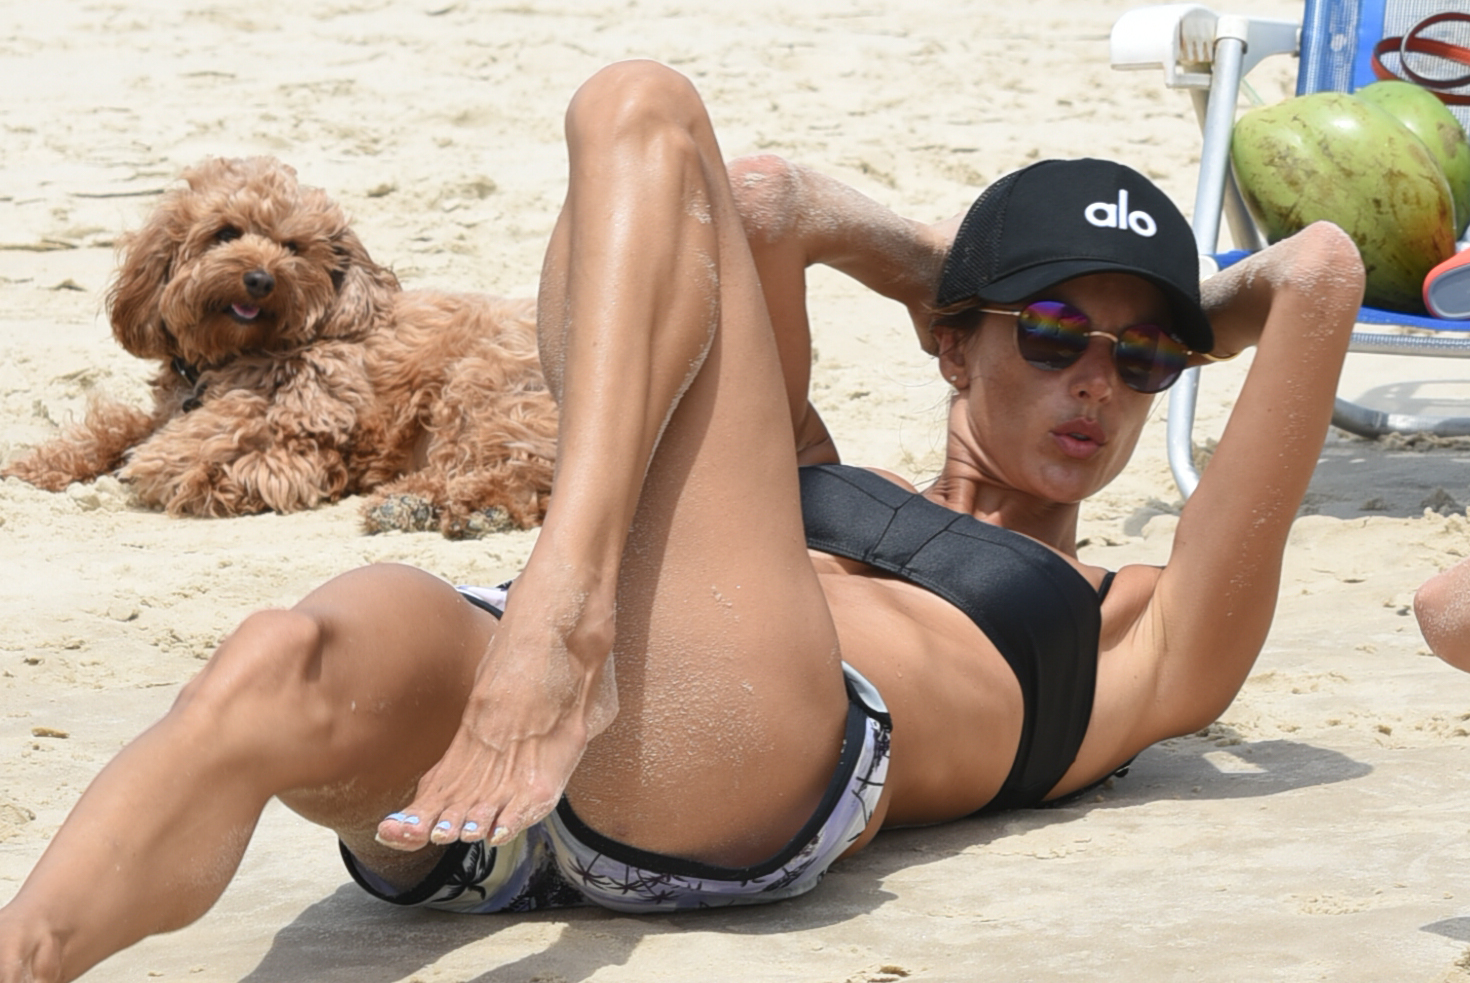 Alessandra Ambrosio Seen Exercising On The Beach With Her Personal Trainer